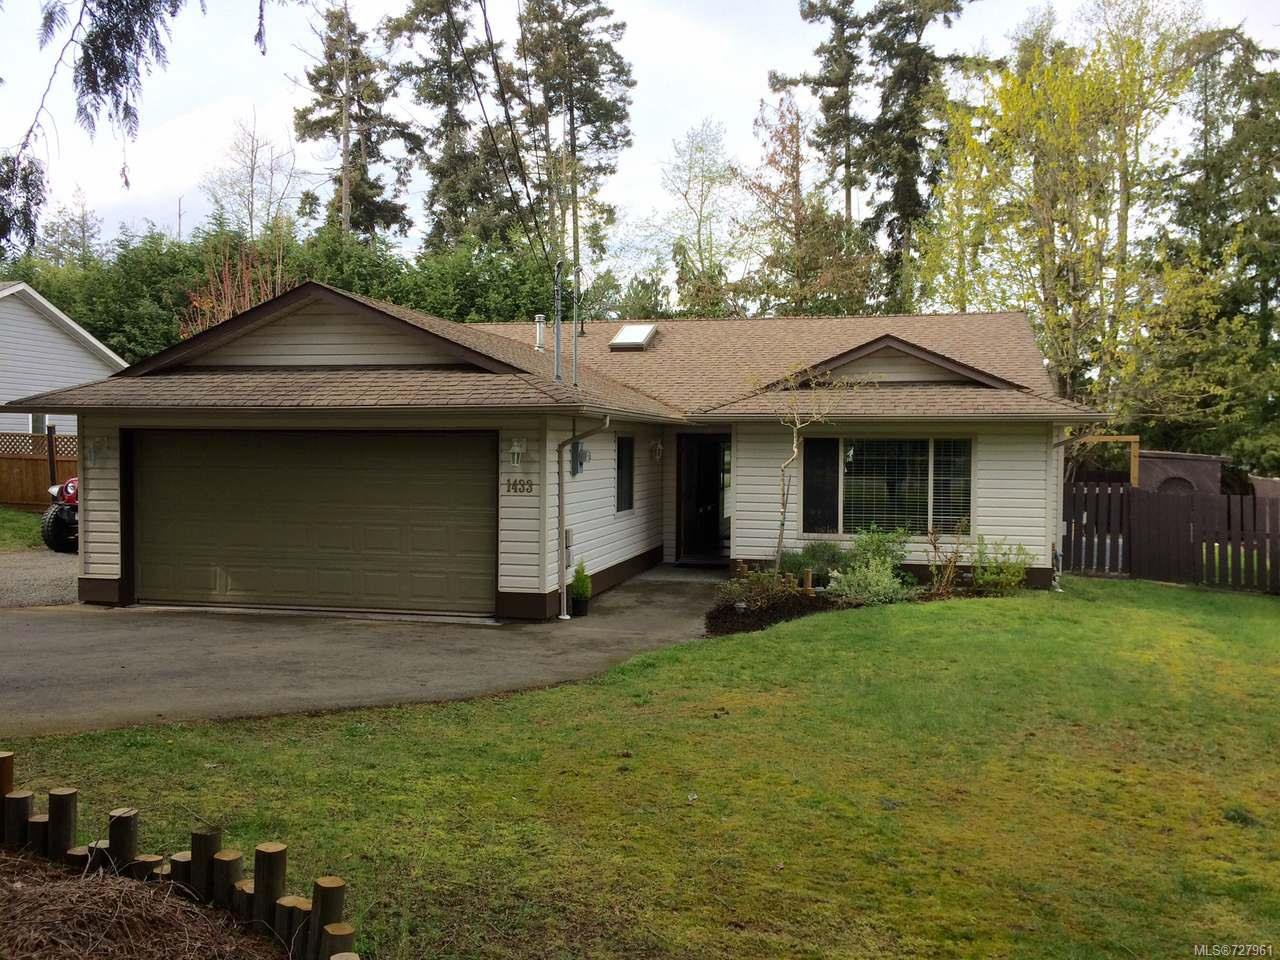 Main Photo: 1433 SUNRISE DRIVE in FRENCH CREEK: PQ French Creek House for sale (Parksville/Qualicum)  : MLS®# 727961